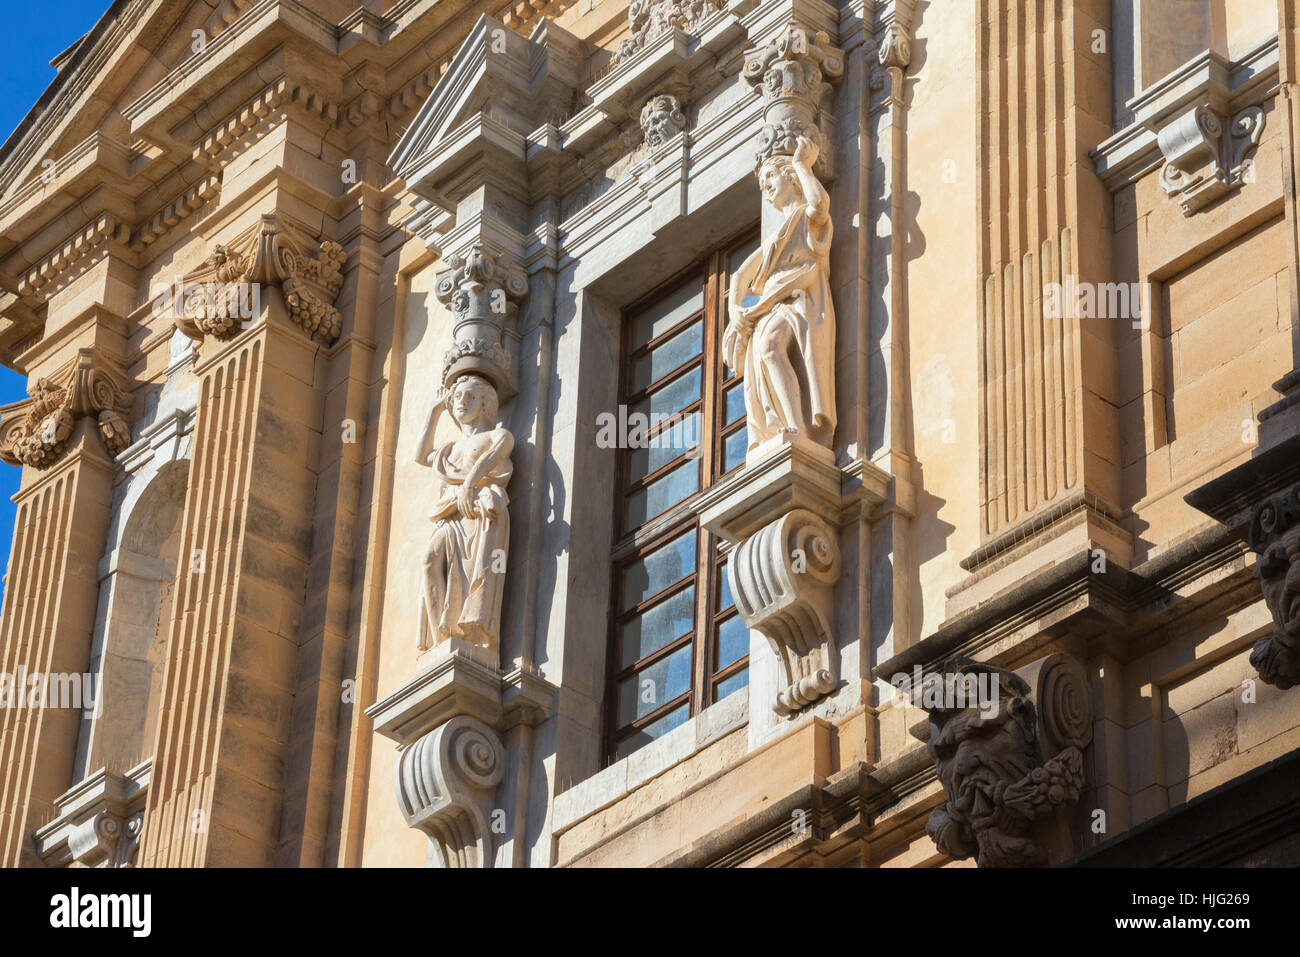 Church of the Jesuits, Trapani, Sicily, Italy. - Stock Image